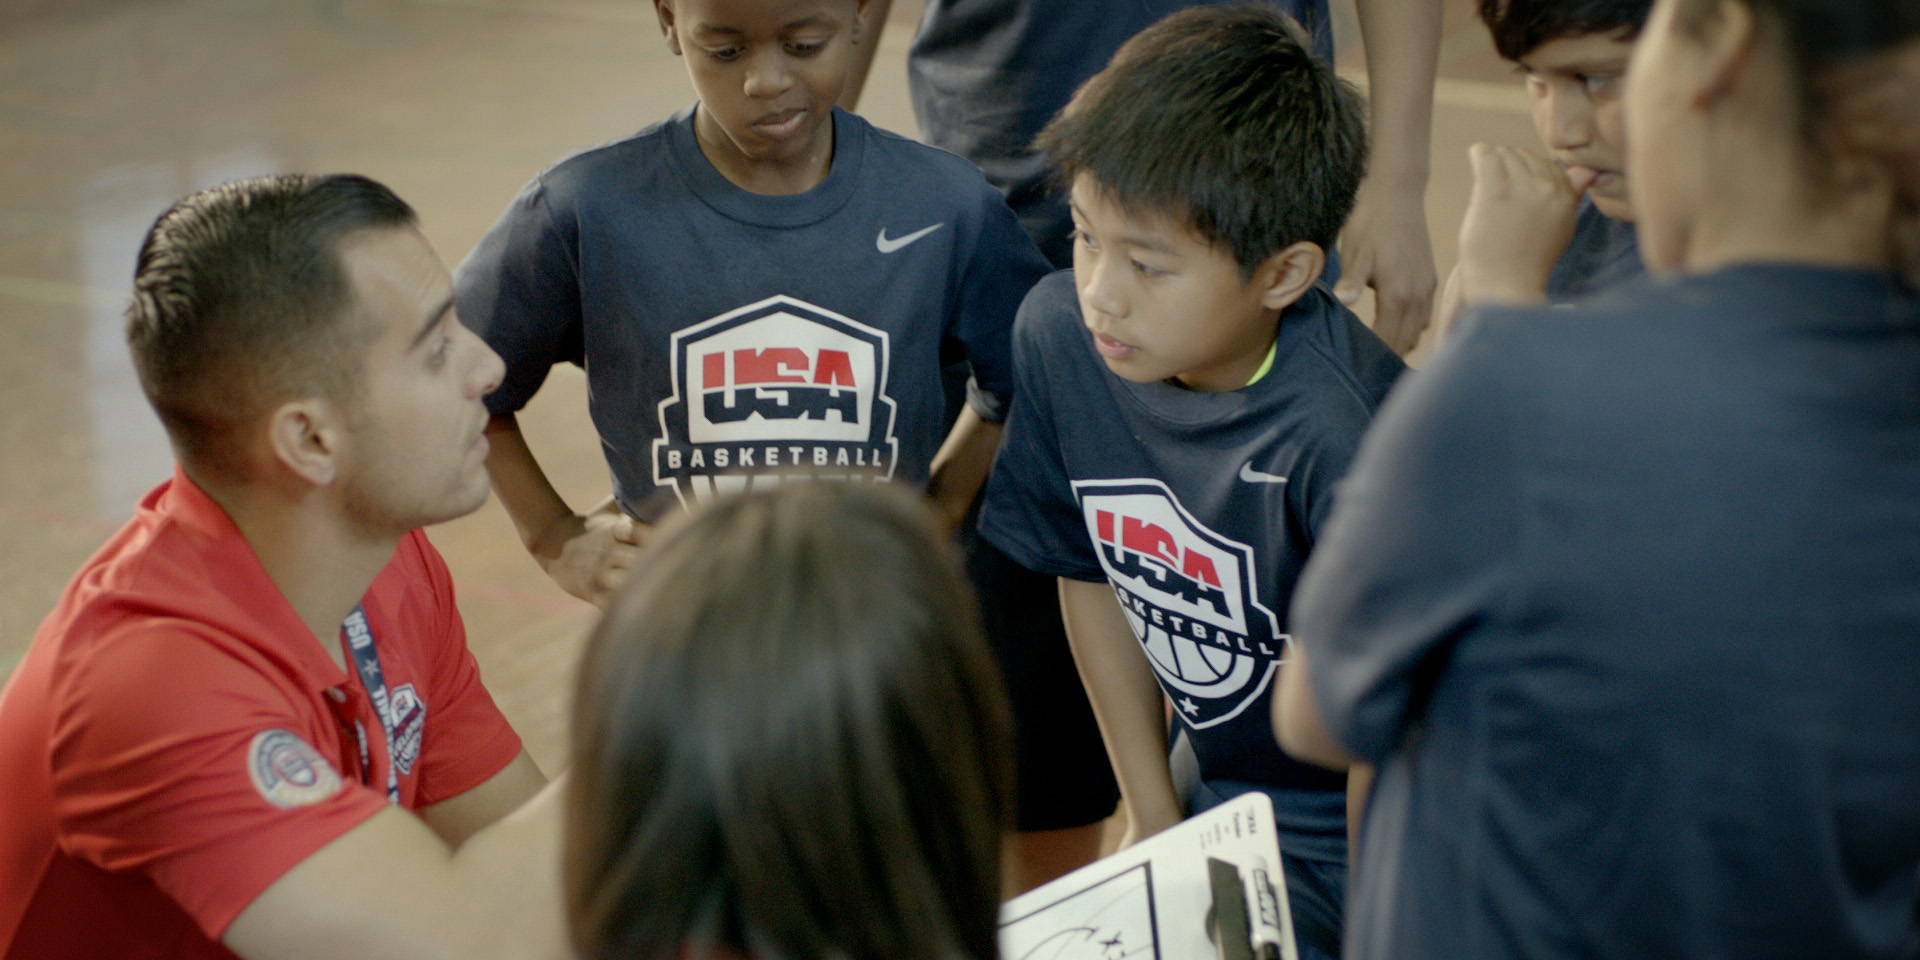 USA Basketball Youth Development Commercial